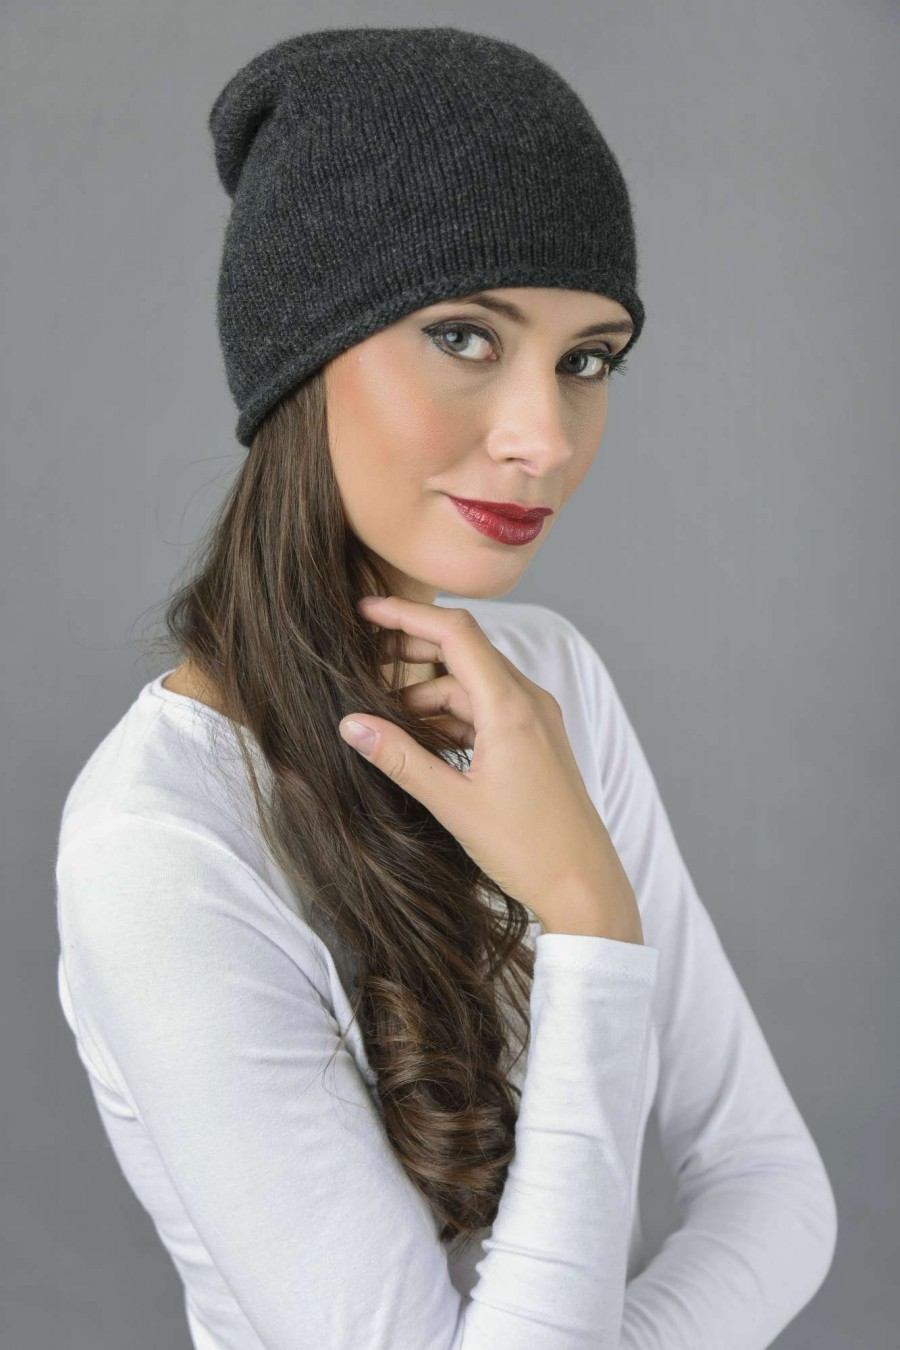 27ac0976f59 Pure Cashmere Plain Knitted Slouchy Beanie Hat in Charcoal Grey ...